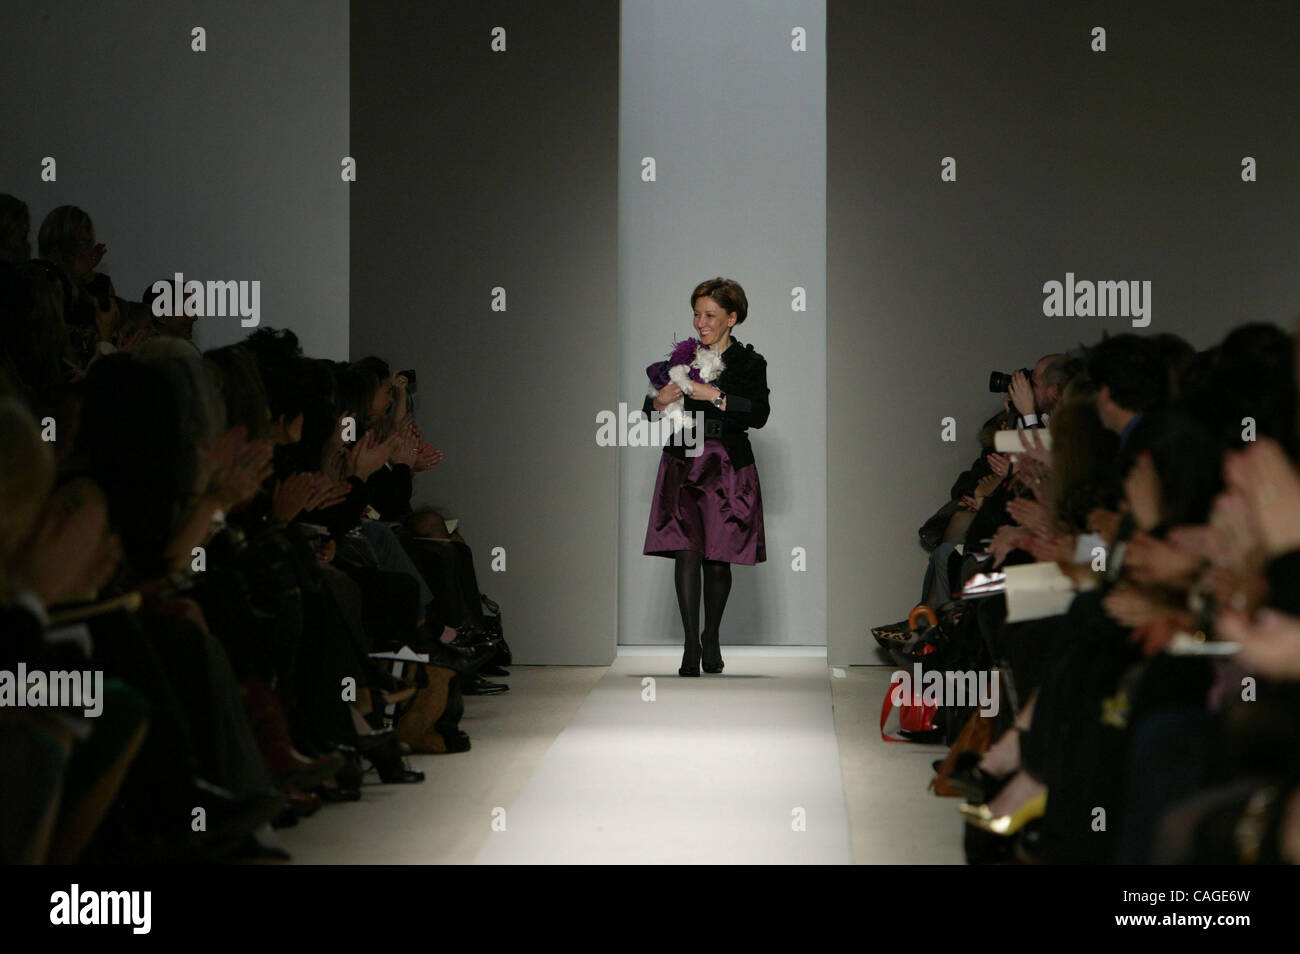 Designer REEM ACRA carries her dog while receiving applause following the REEM ACRA Fall 2008 Fashion Show in New Stock Photo